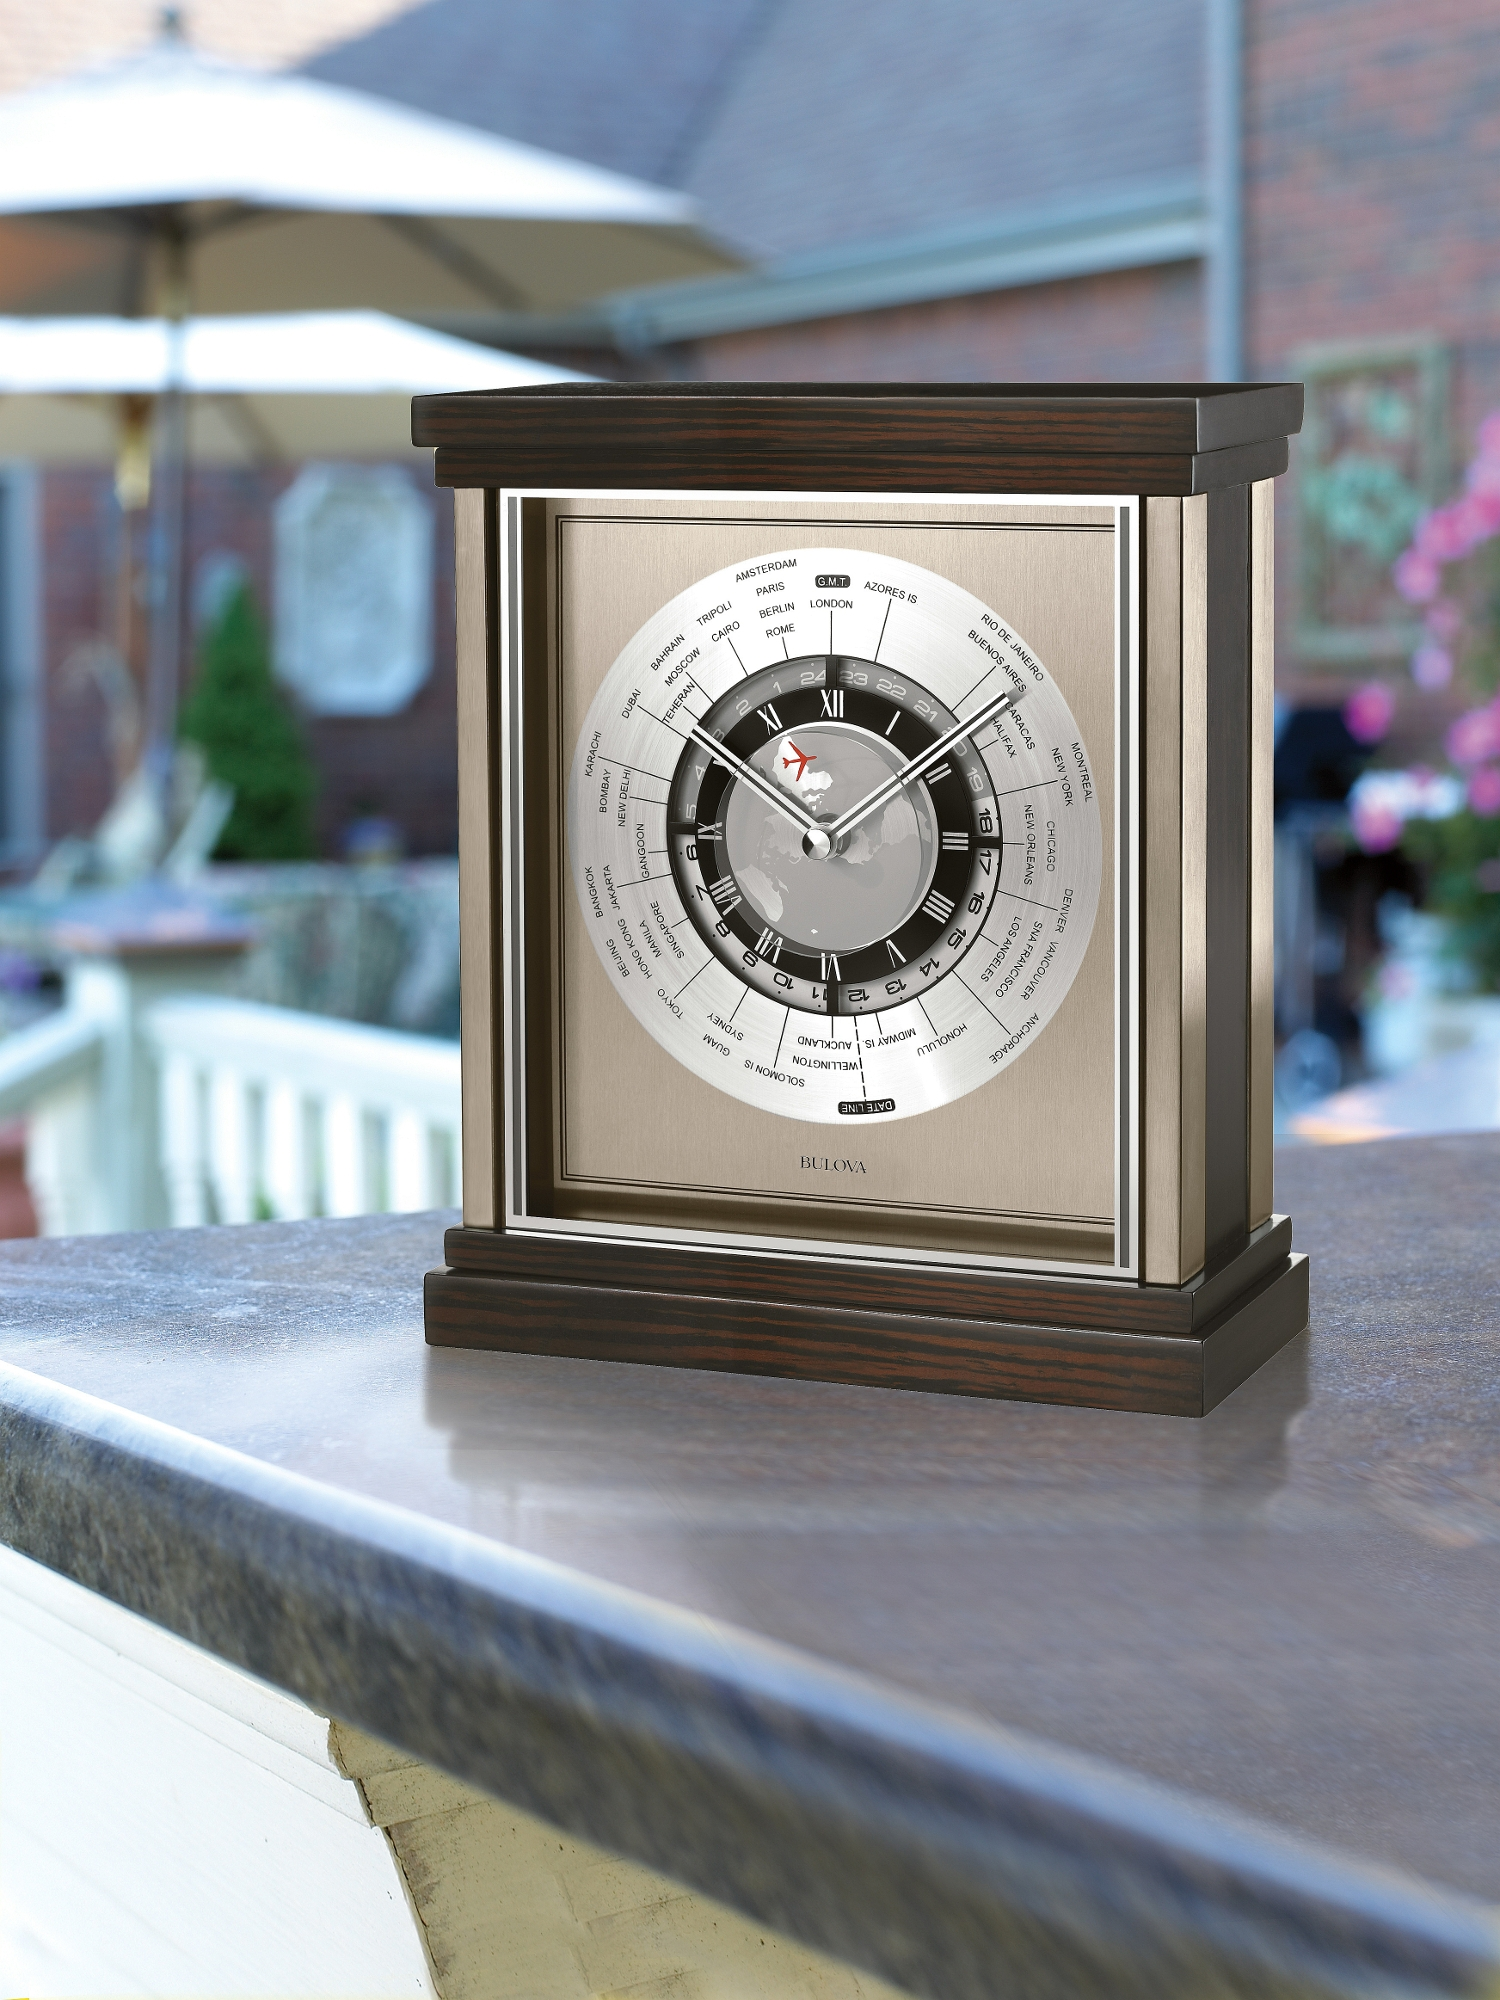 Bulova Valeria Mantel Clock | German Mantel Clocks | Bulova Mantel Clock